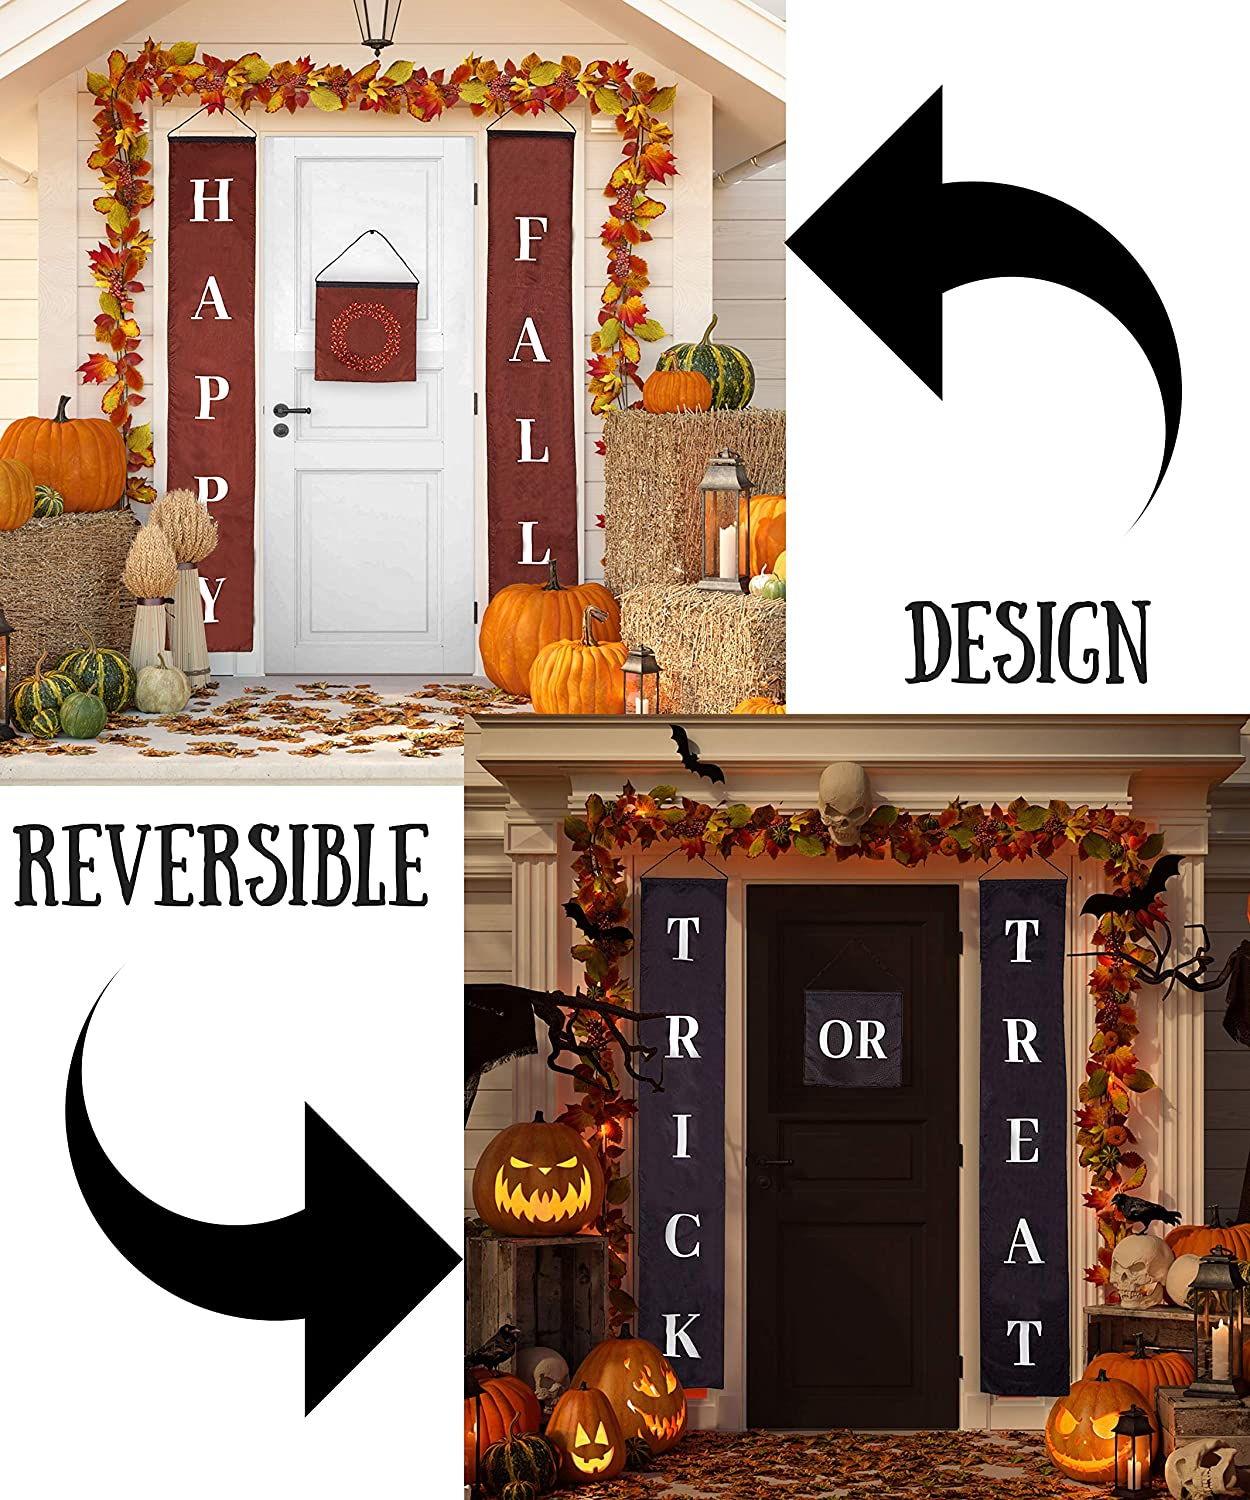 Fall Decor Halloween Decorations Reversible Trick Or Treat Happy Fall Banner Durable 3 Piece Set Perfect For Front Door Home Or Office Party Decor